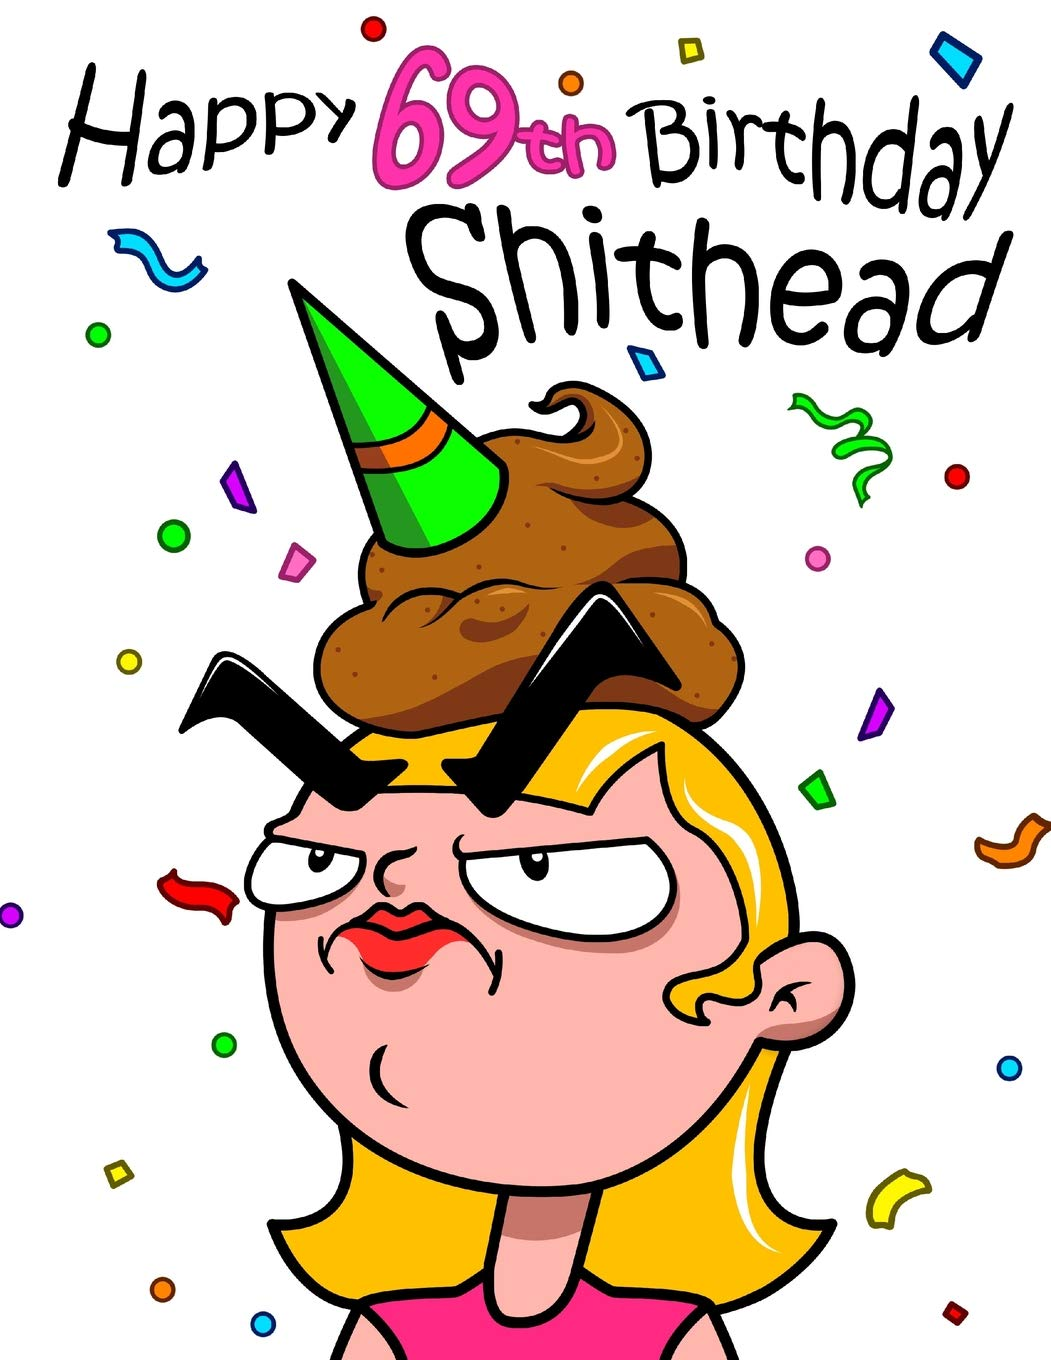 Happy 69th Birthday Shithead Forget The Card And Get This